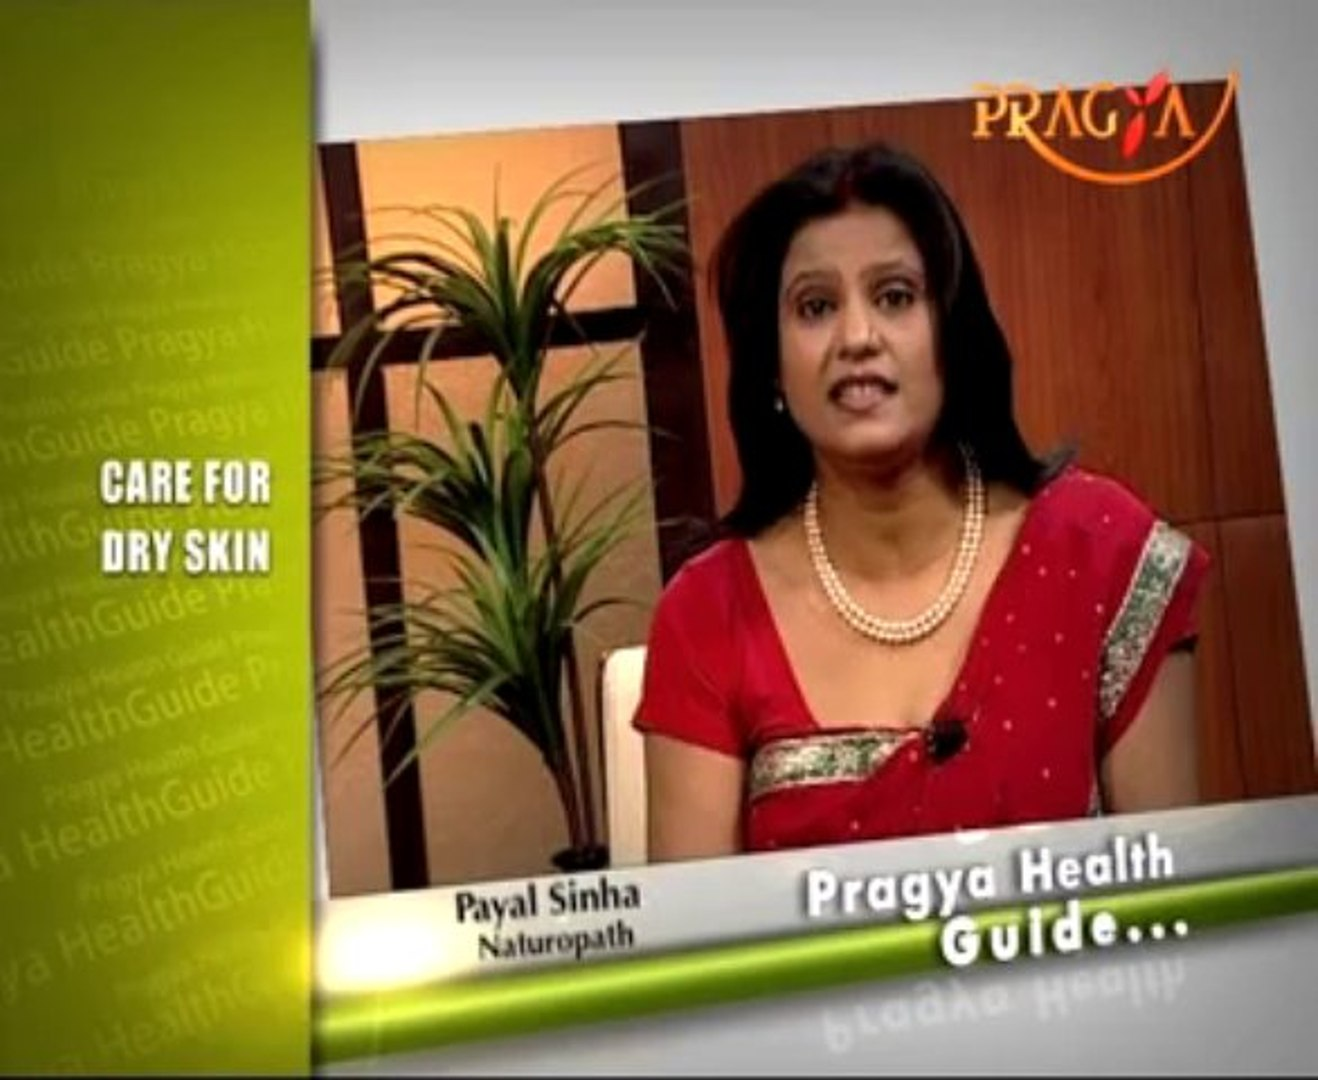 What to do for avoid dry skin in winter,advised by Dr. Payal Sinha